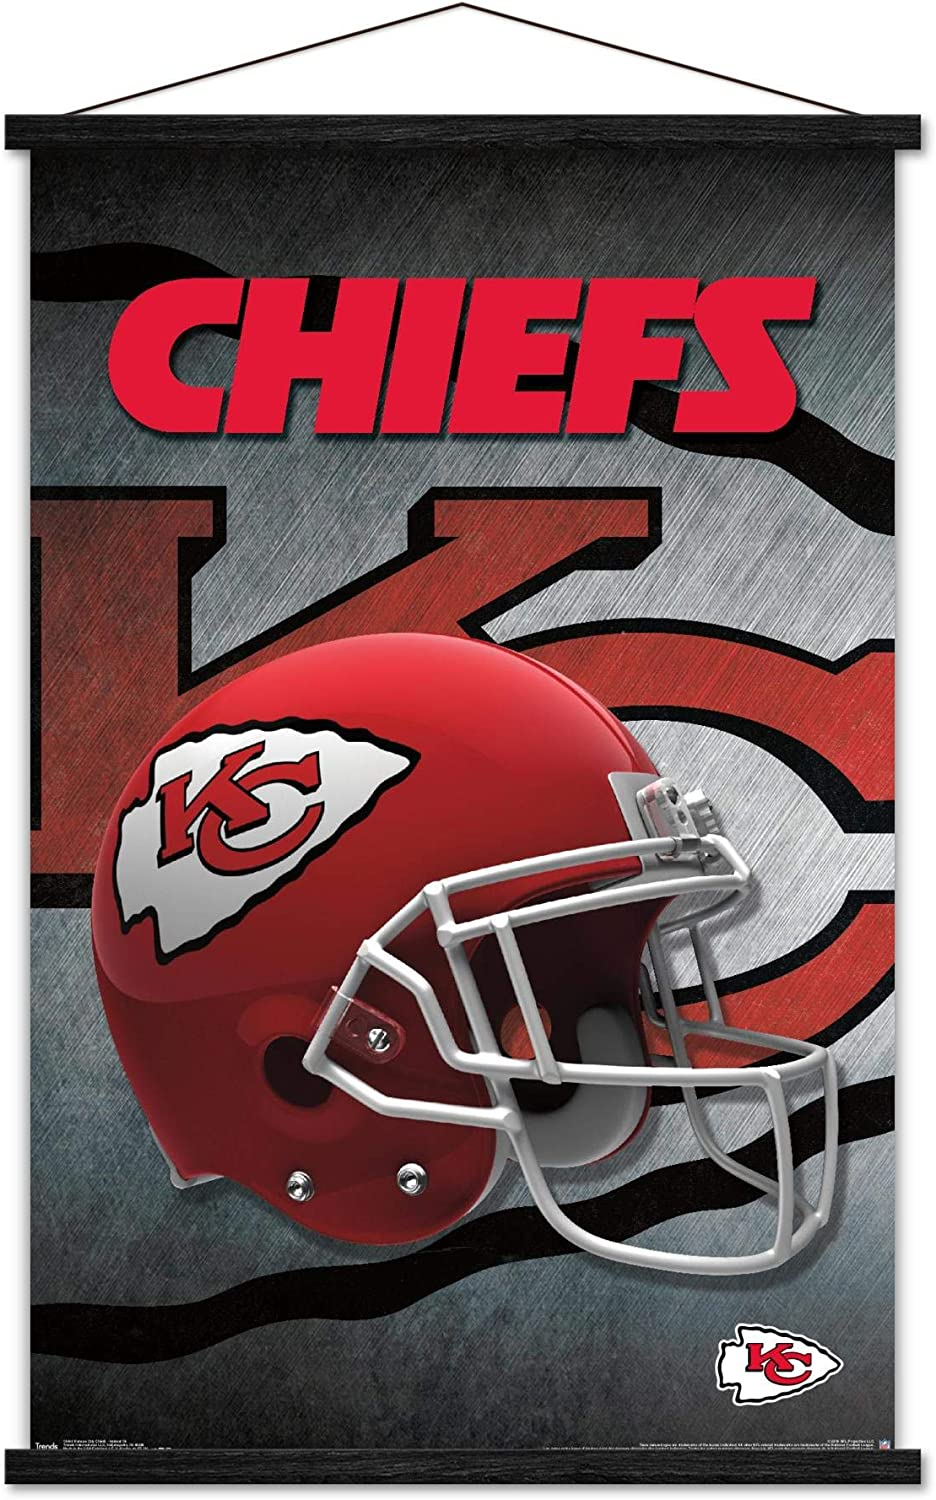 """Trends International NFL Kansas City Chiefs - Helmet 16 Wall Poster with Wooden Magnetic Frame, 22.375"""" x 34"""", Print and Black Hanger Bundle"""